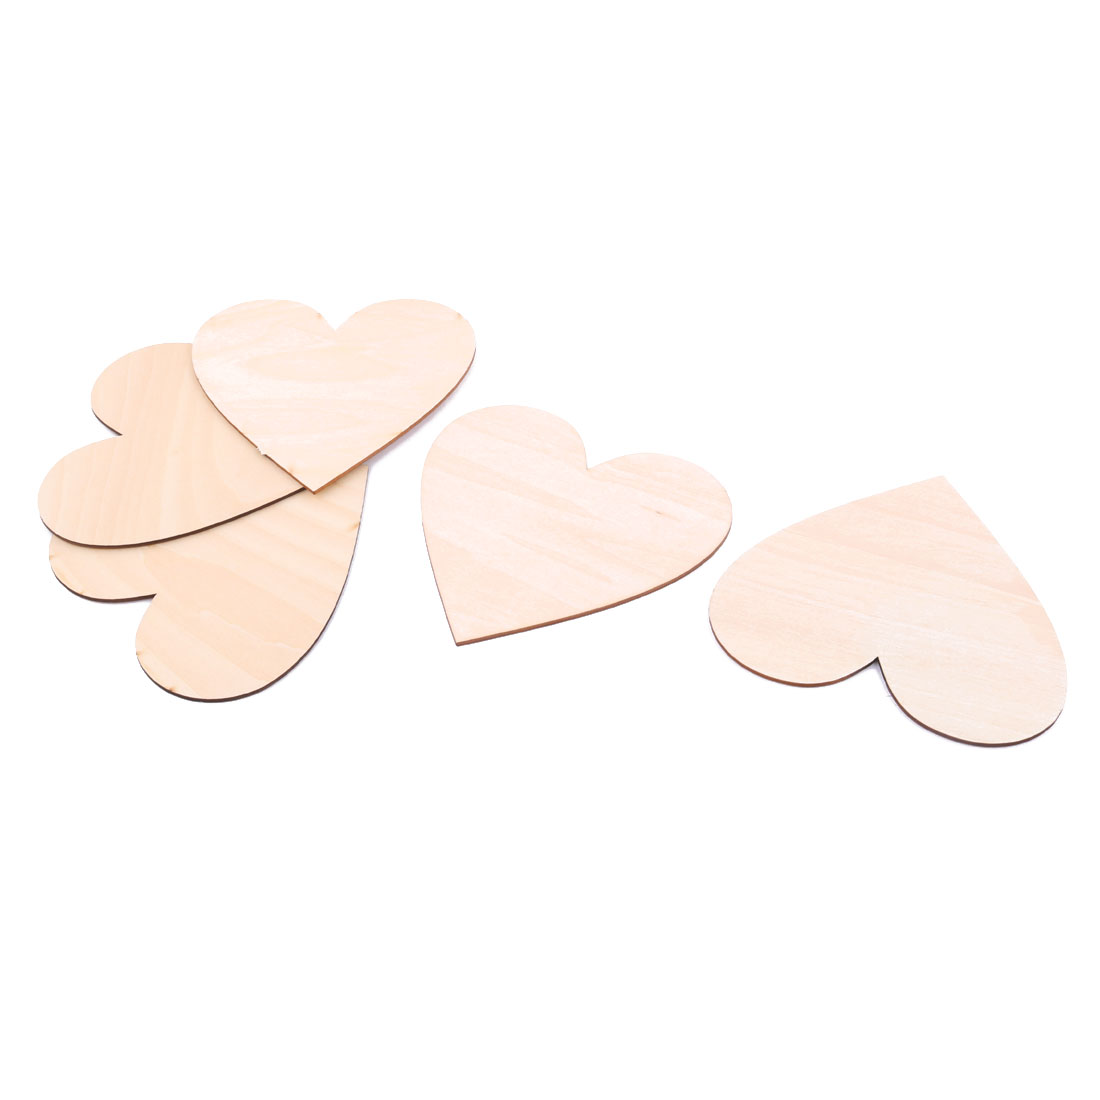 Wooden Love Heart Shaped Wedding Decor DIY Accessories Embellishment Beige 100 x 95mm 5 Pcs